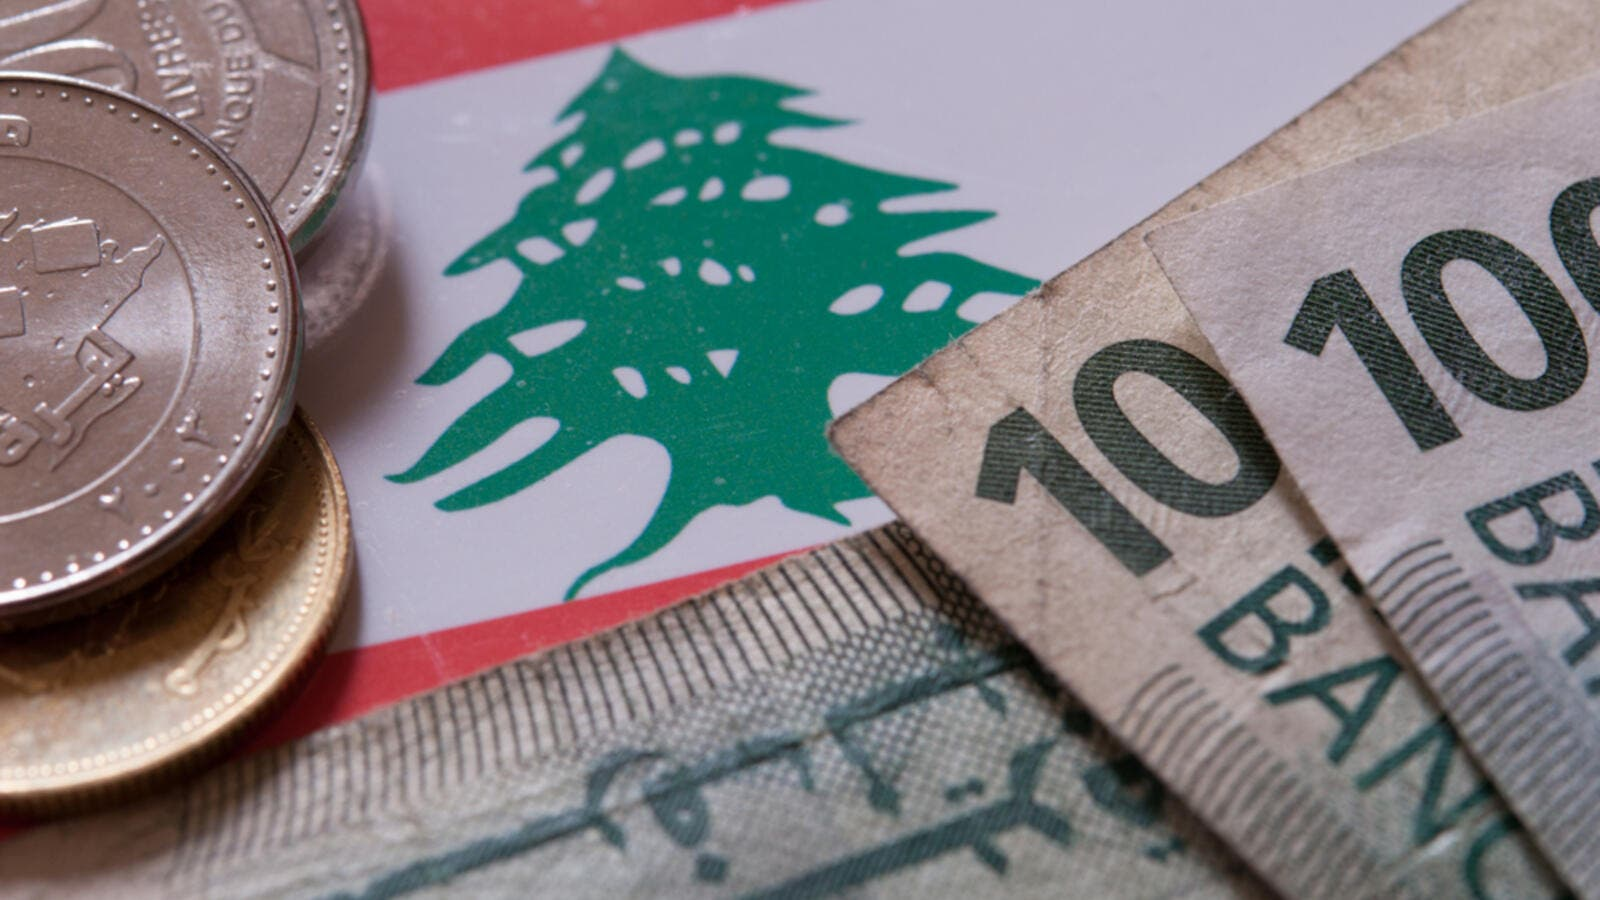 Lebanon Formally Seeks IMF Help to Rescue Its Deteriorating Economy